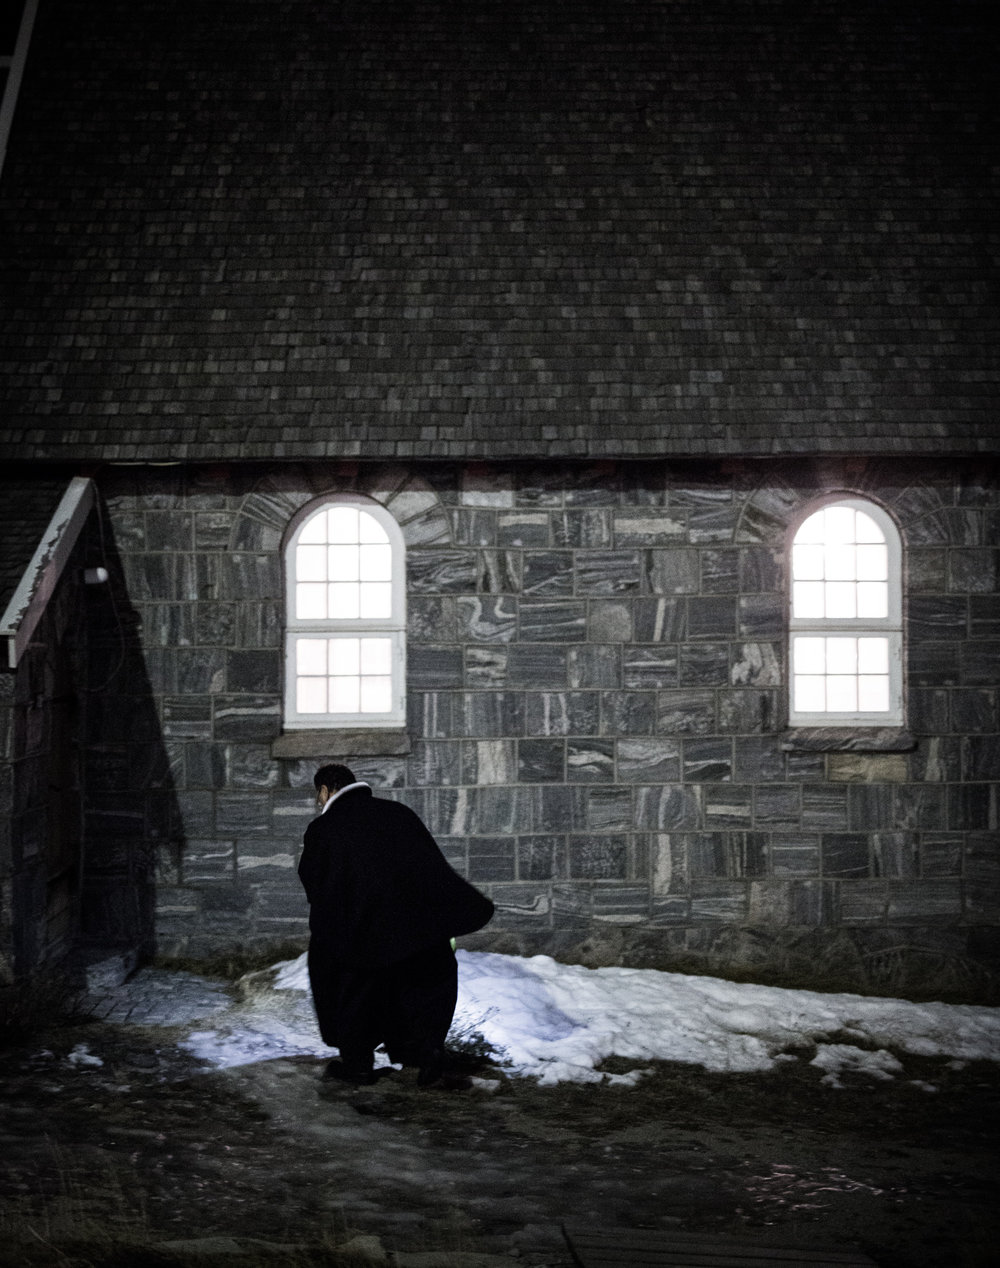 """The Greenlandic priest of the Lutheran Church of Greenland in Uummannaq is walking toward his chapel on the First Advent. He is one of the only confidants that the town's population can rely on. """"When the light changes, people look inwards, sometimes developing bad thoughts"""", he says later."""